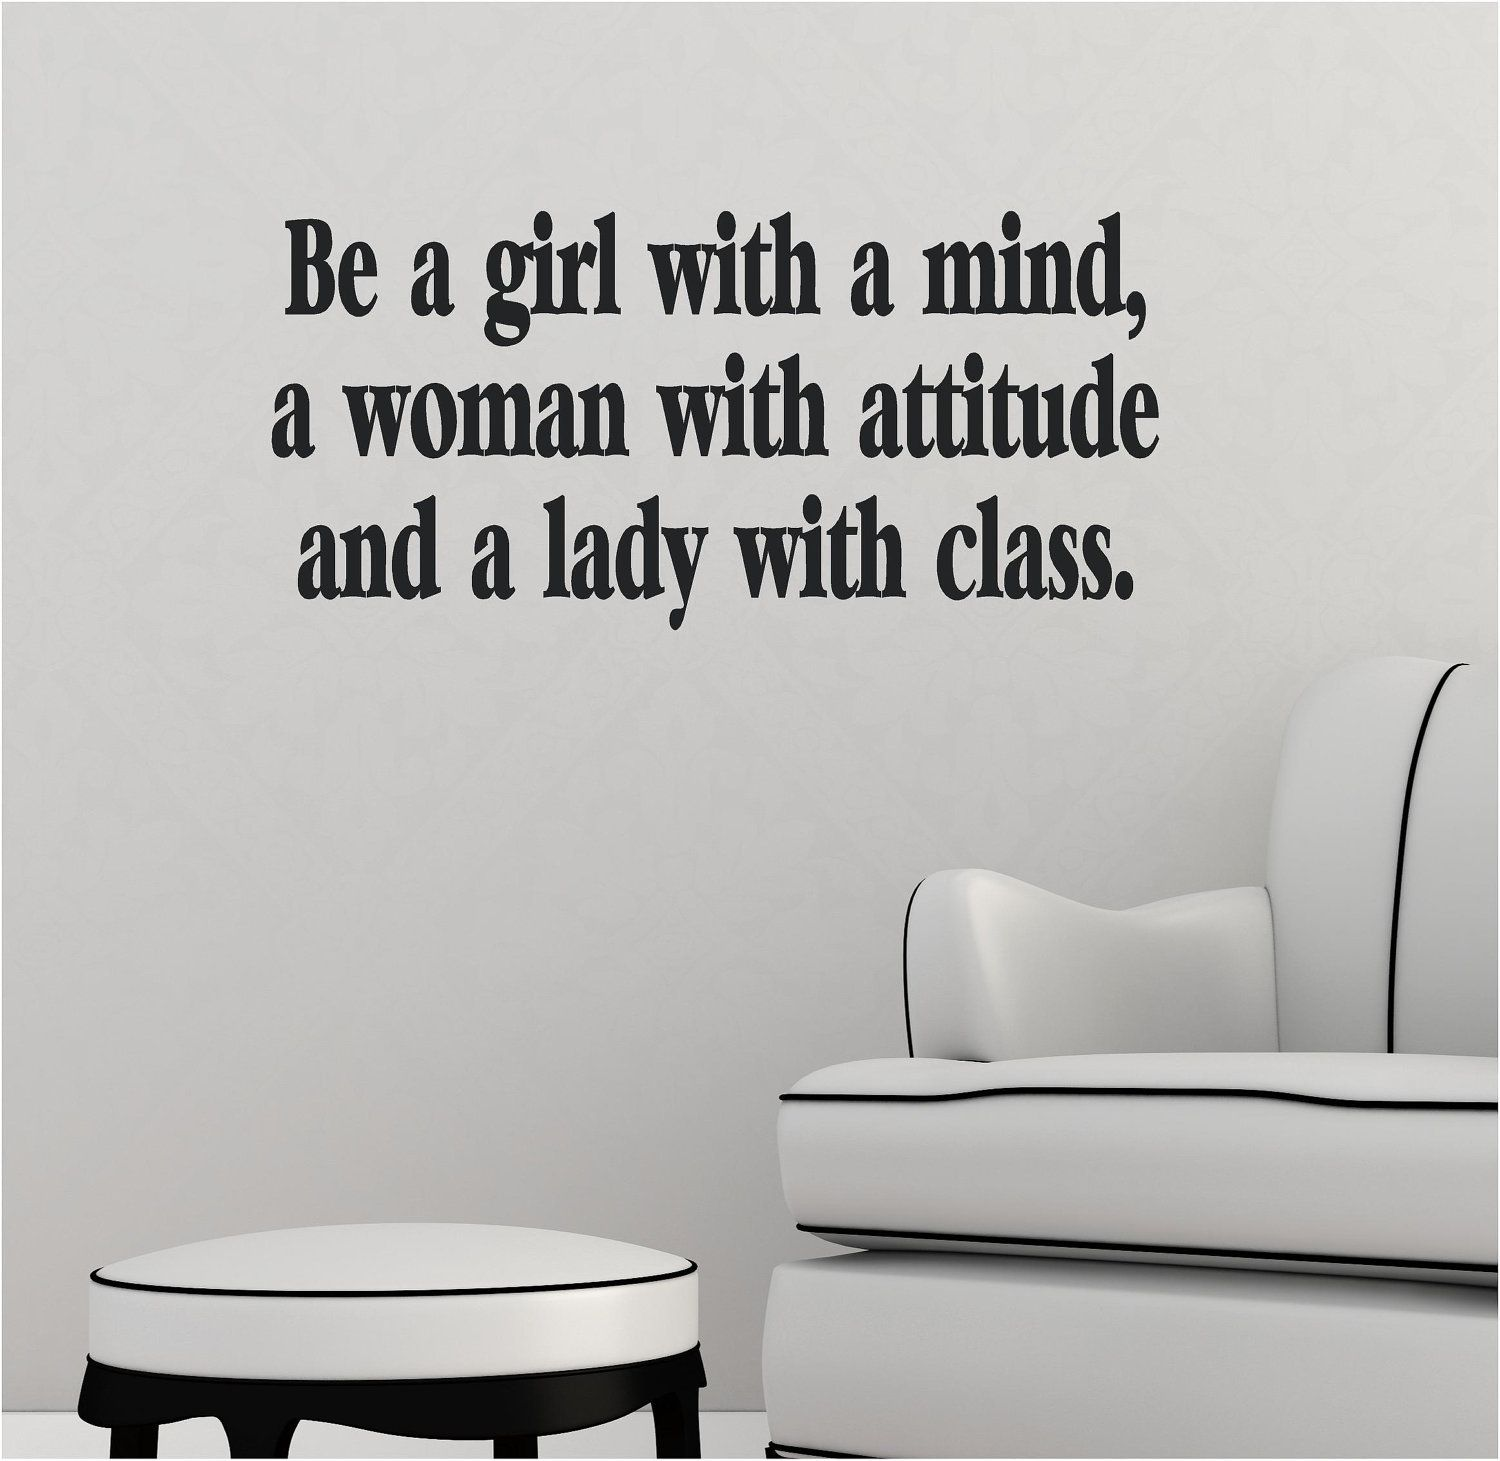 Girl With Attitude Quotes Be A Girl With A Mind A Woman With An Attitude Stuff That Is